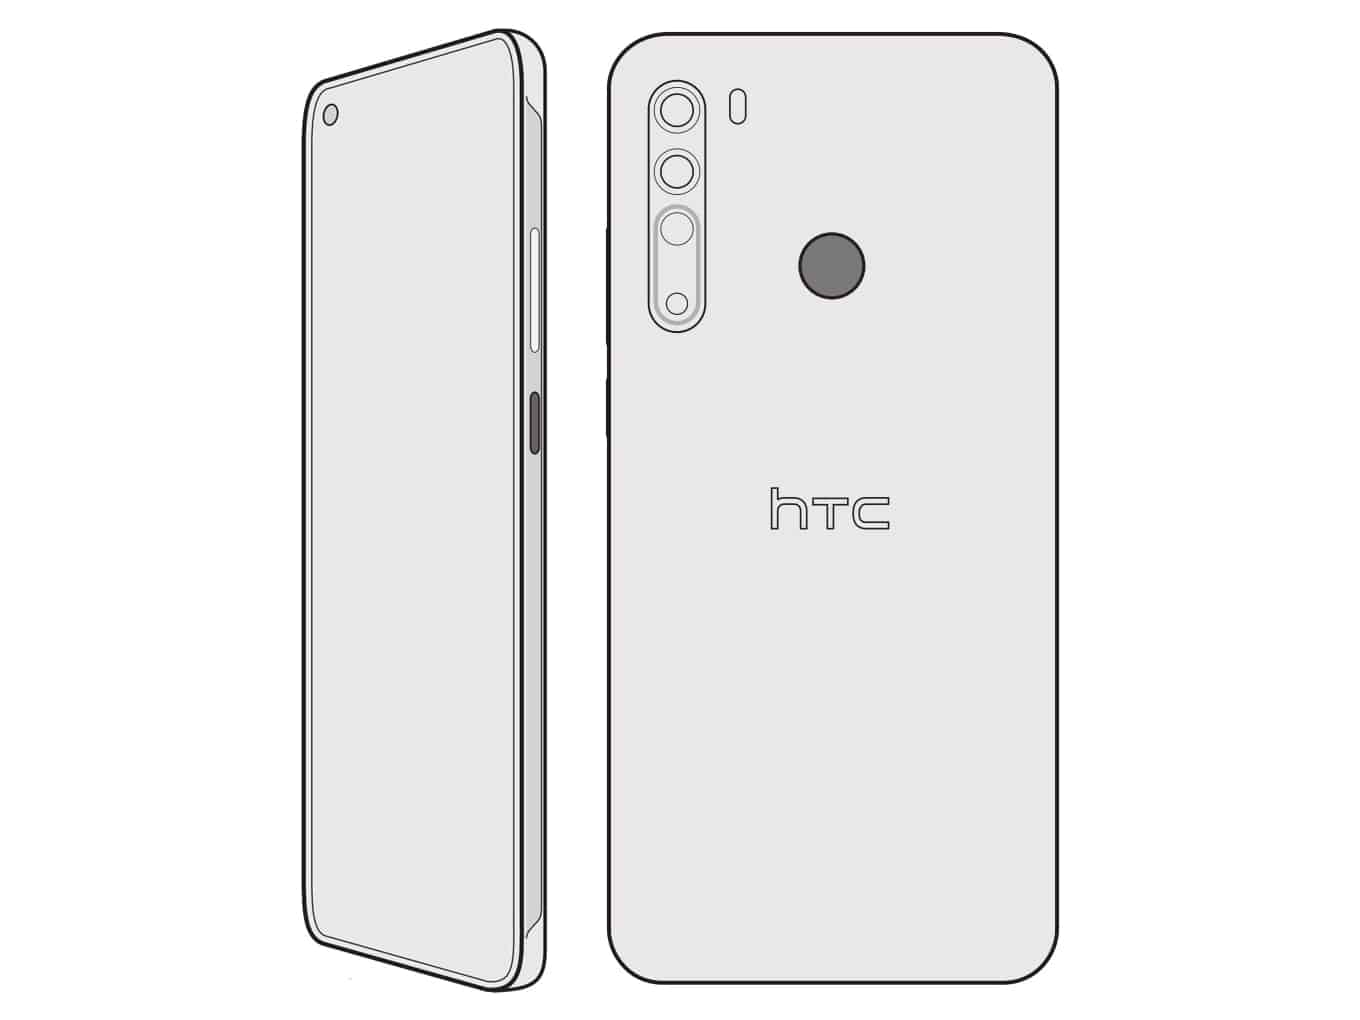 HTC Launches Date for New Smartphone Estimated to be Desire 20 Pro